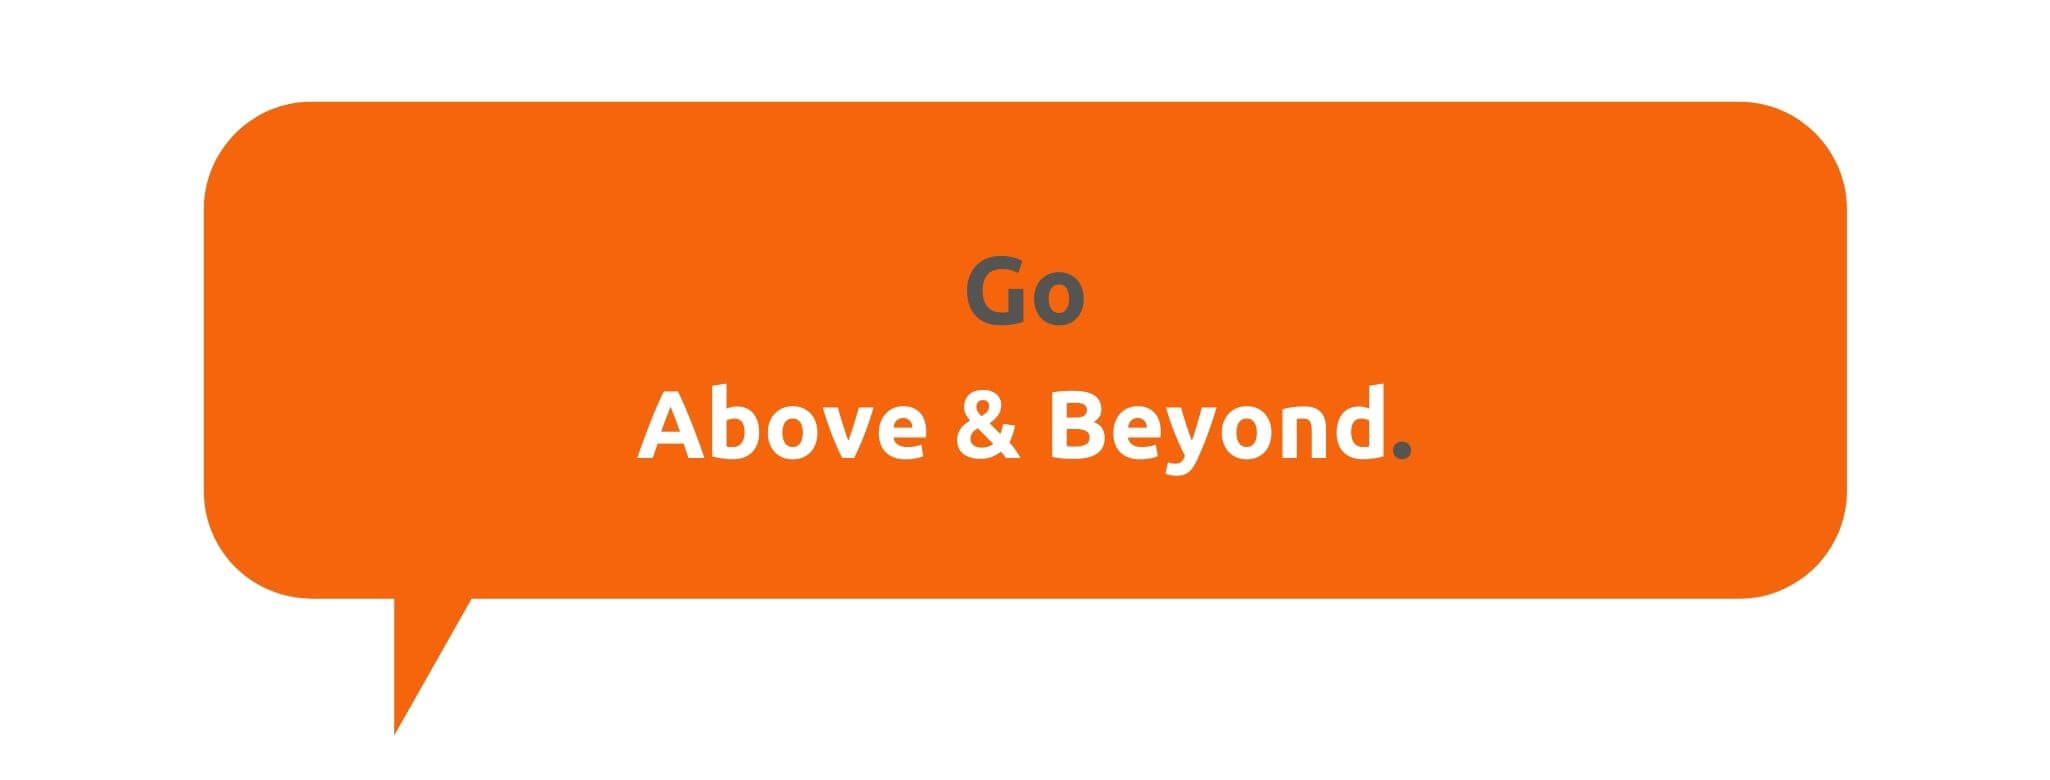 Go Above and Beyond - How to Run a Customer-Centric Business - Replyco Helpdesk Software for eCommerce